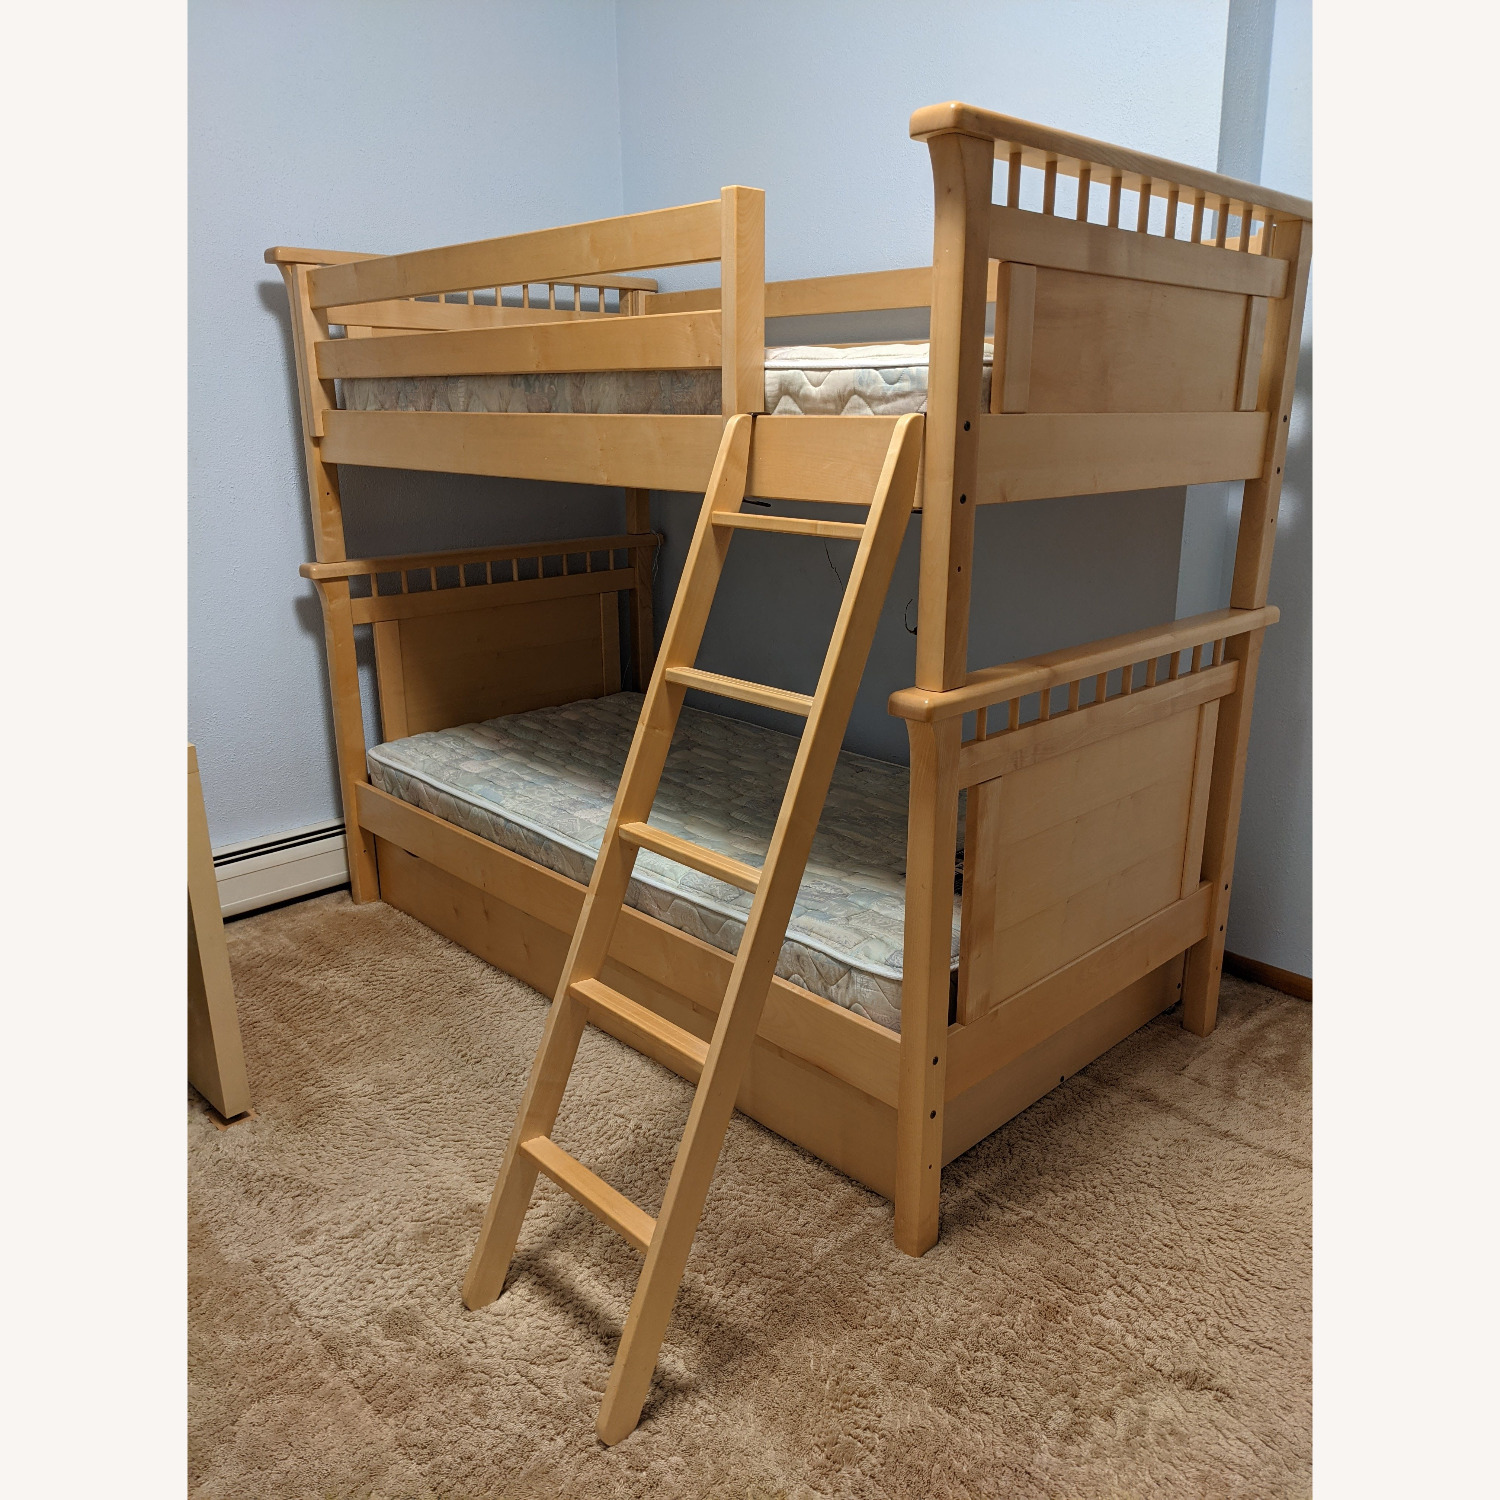 Solid Wood Bunk Beds w/ Under Bed Storage Drawers - image-1